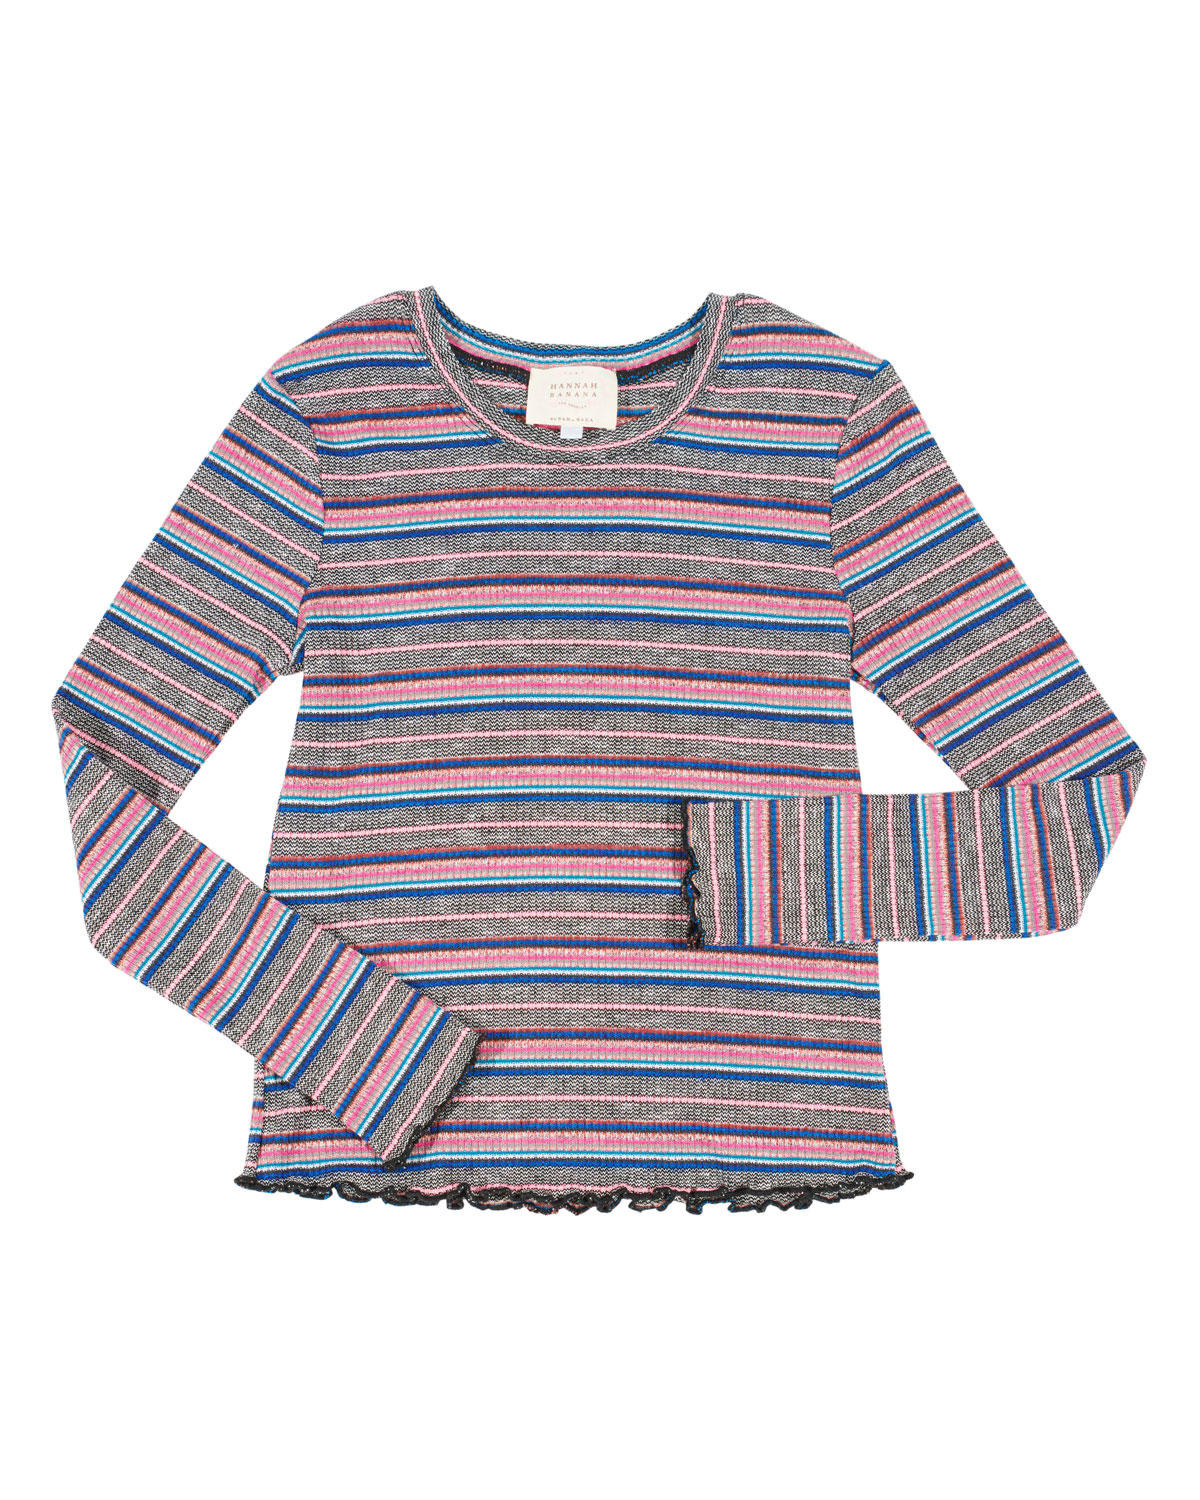 HANNAH BANANA STRIPED RUFFLE-HEM TOP, SIZE 4-6X